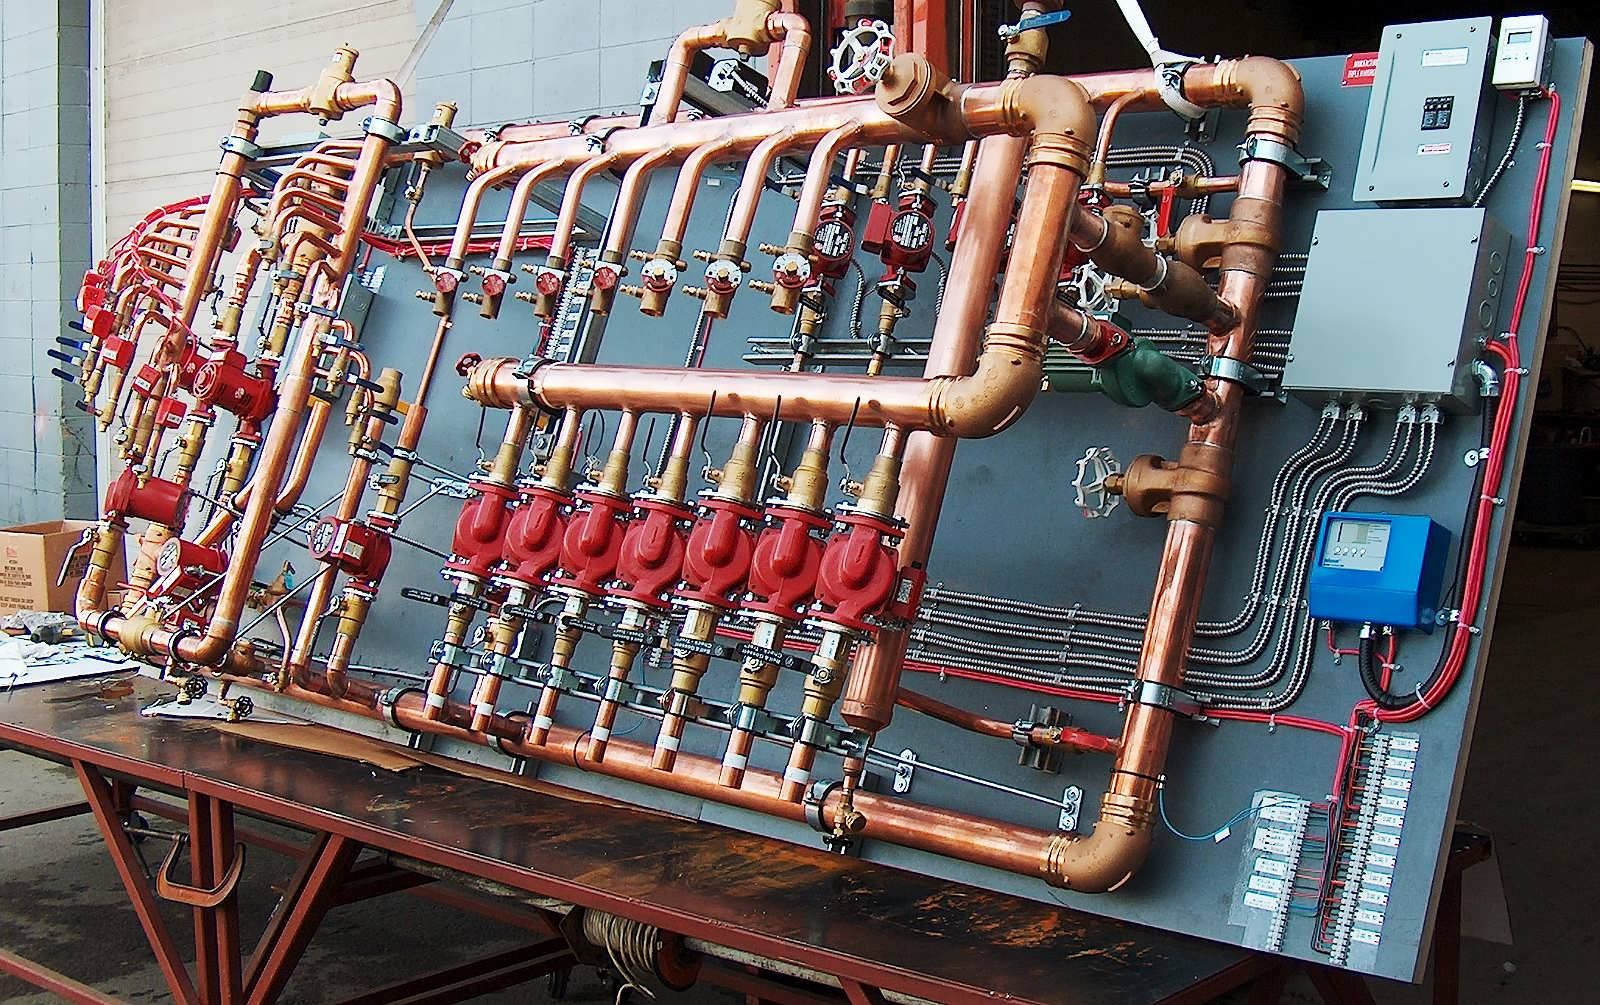 Commercial Hydronic Heating Systems Triple H Hydronics Inc Wiring That Keep Industry Moving